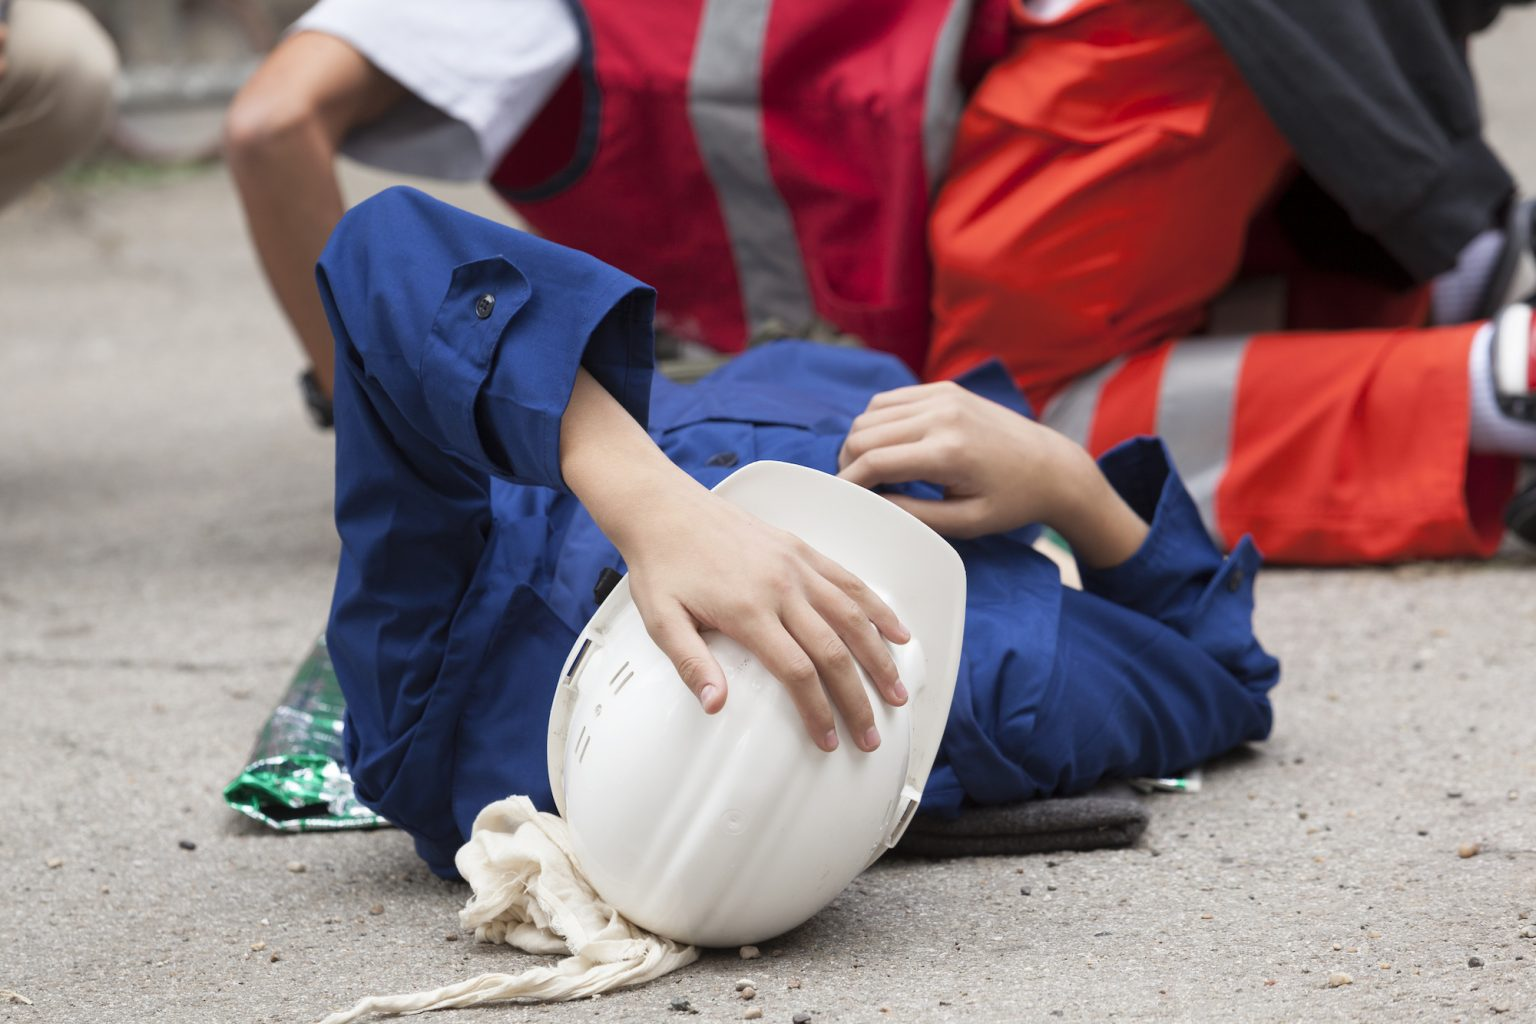 Work injury physiotherapy